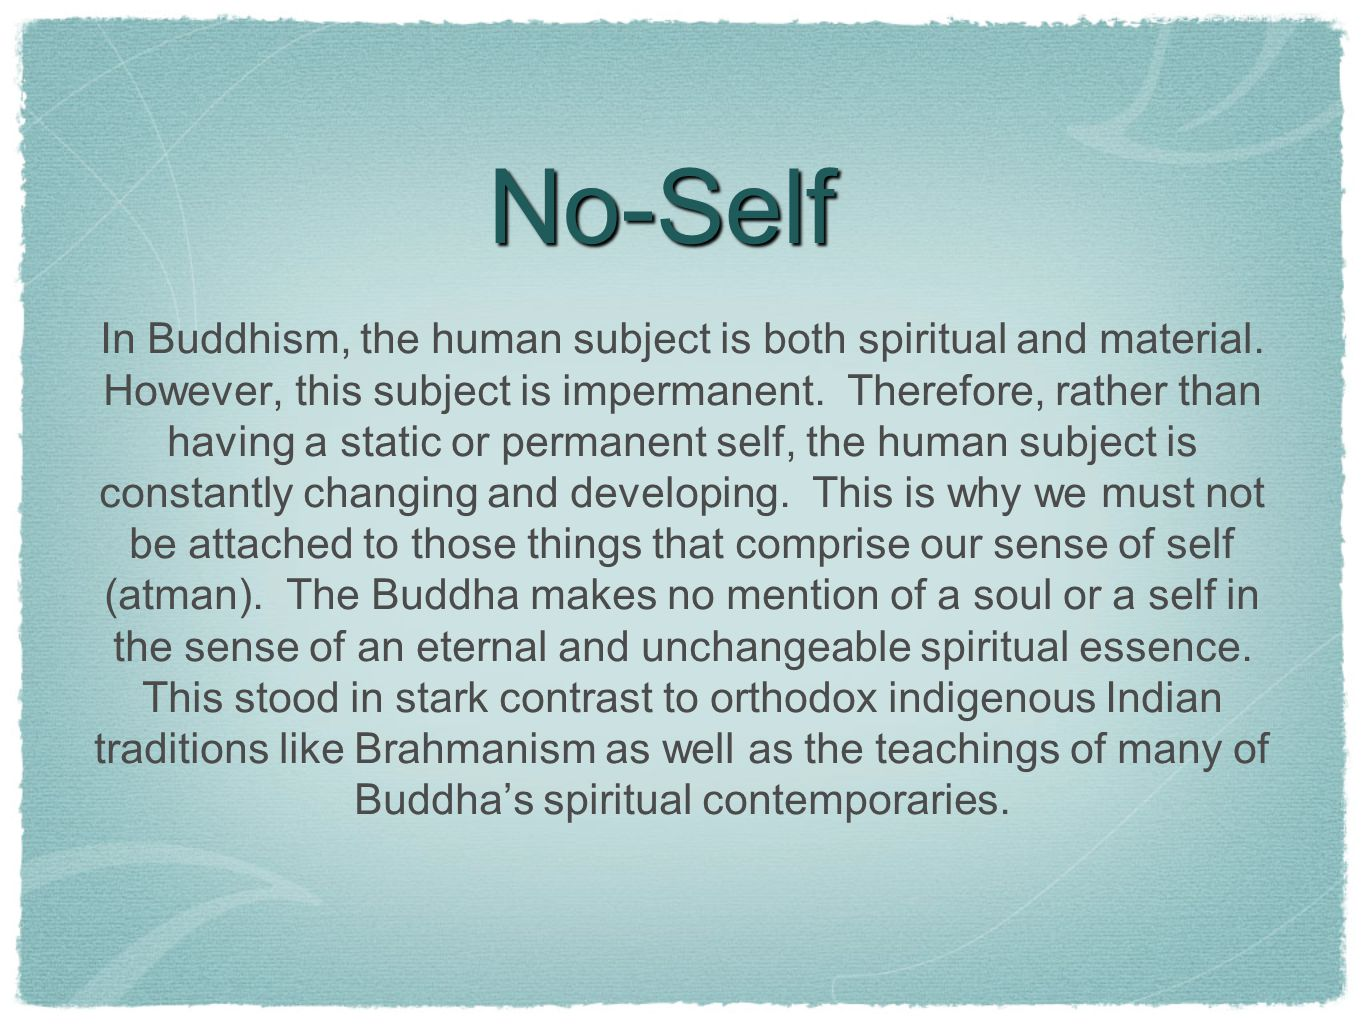 buddhism no self In a nutshell: self and no-self in buddhism by traleg kyabgon rinpoche the buddha, by rejecting the idea of soul, also rejected the concept of reincarnation he was therefore at variance with many of the hindu traditions of india that retained the concept of a soul that survived death and went on to live a.